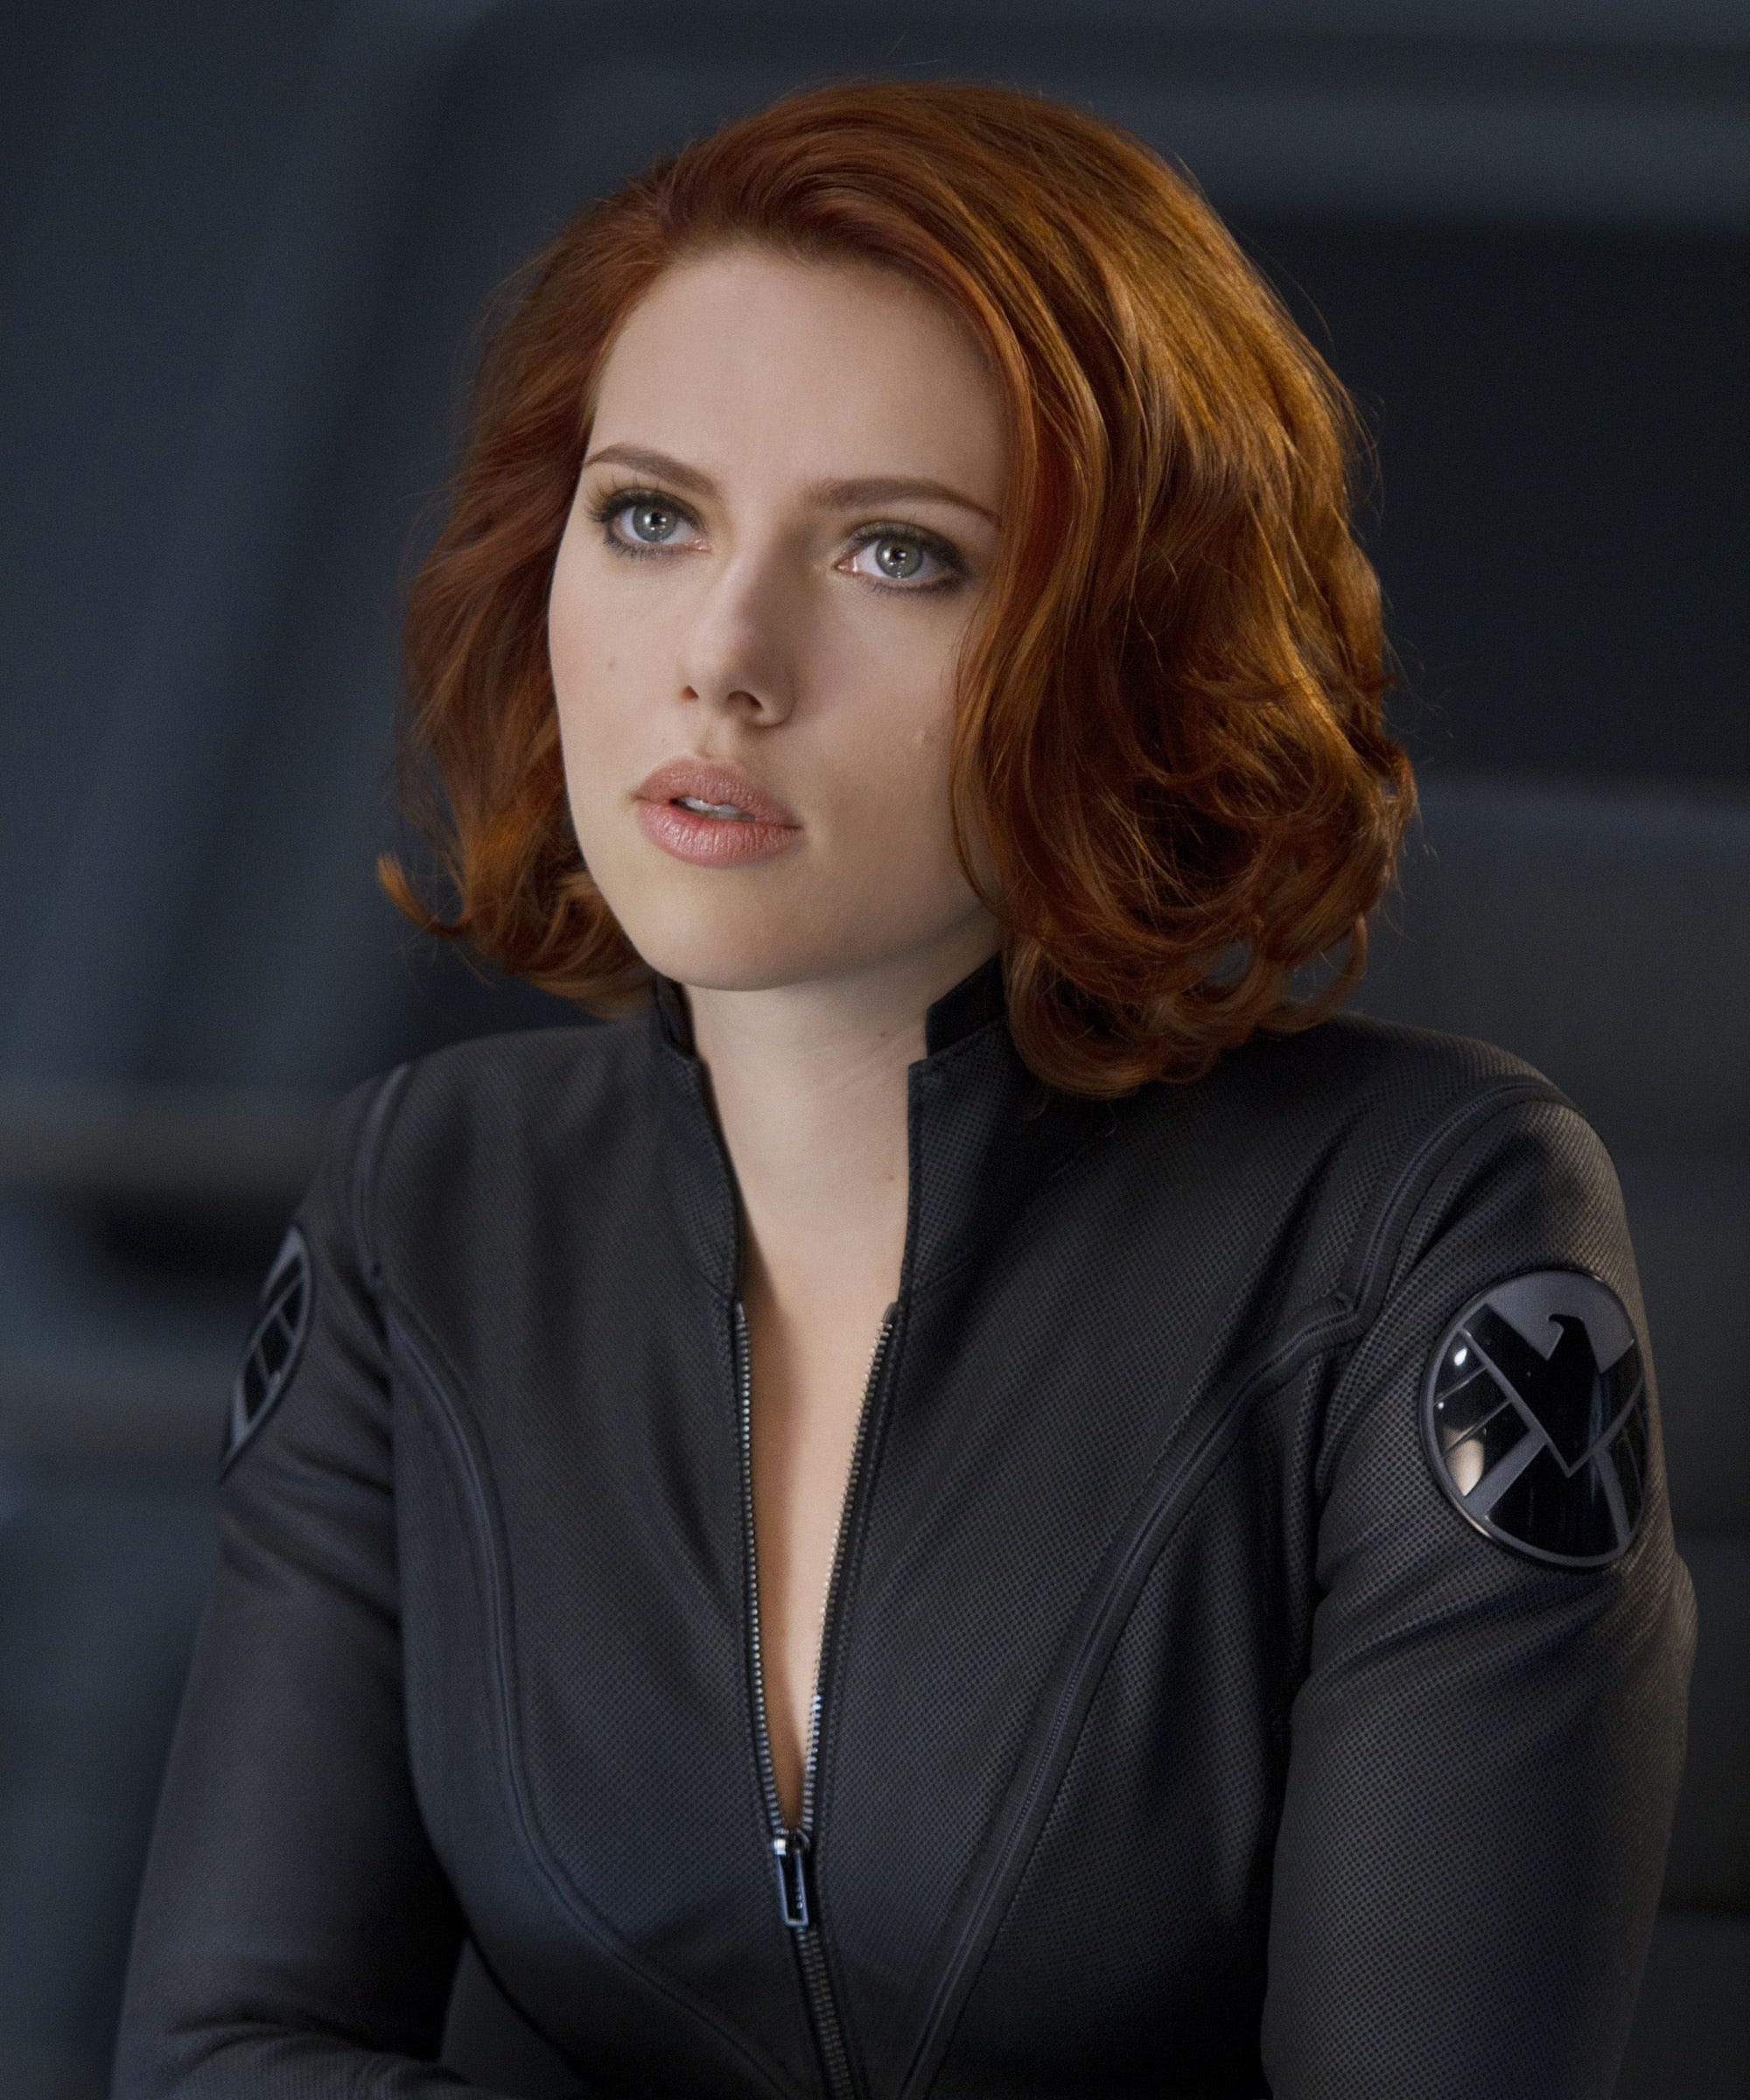 black widow red hair color teases avengers endgame plot